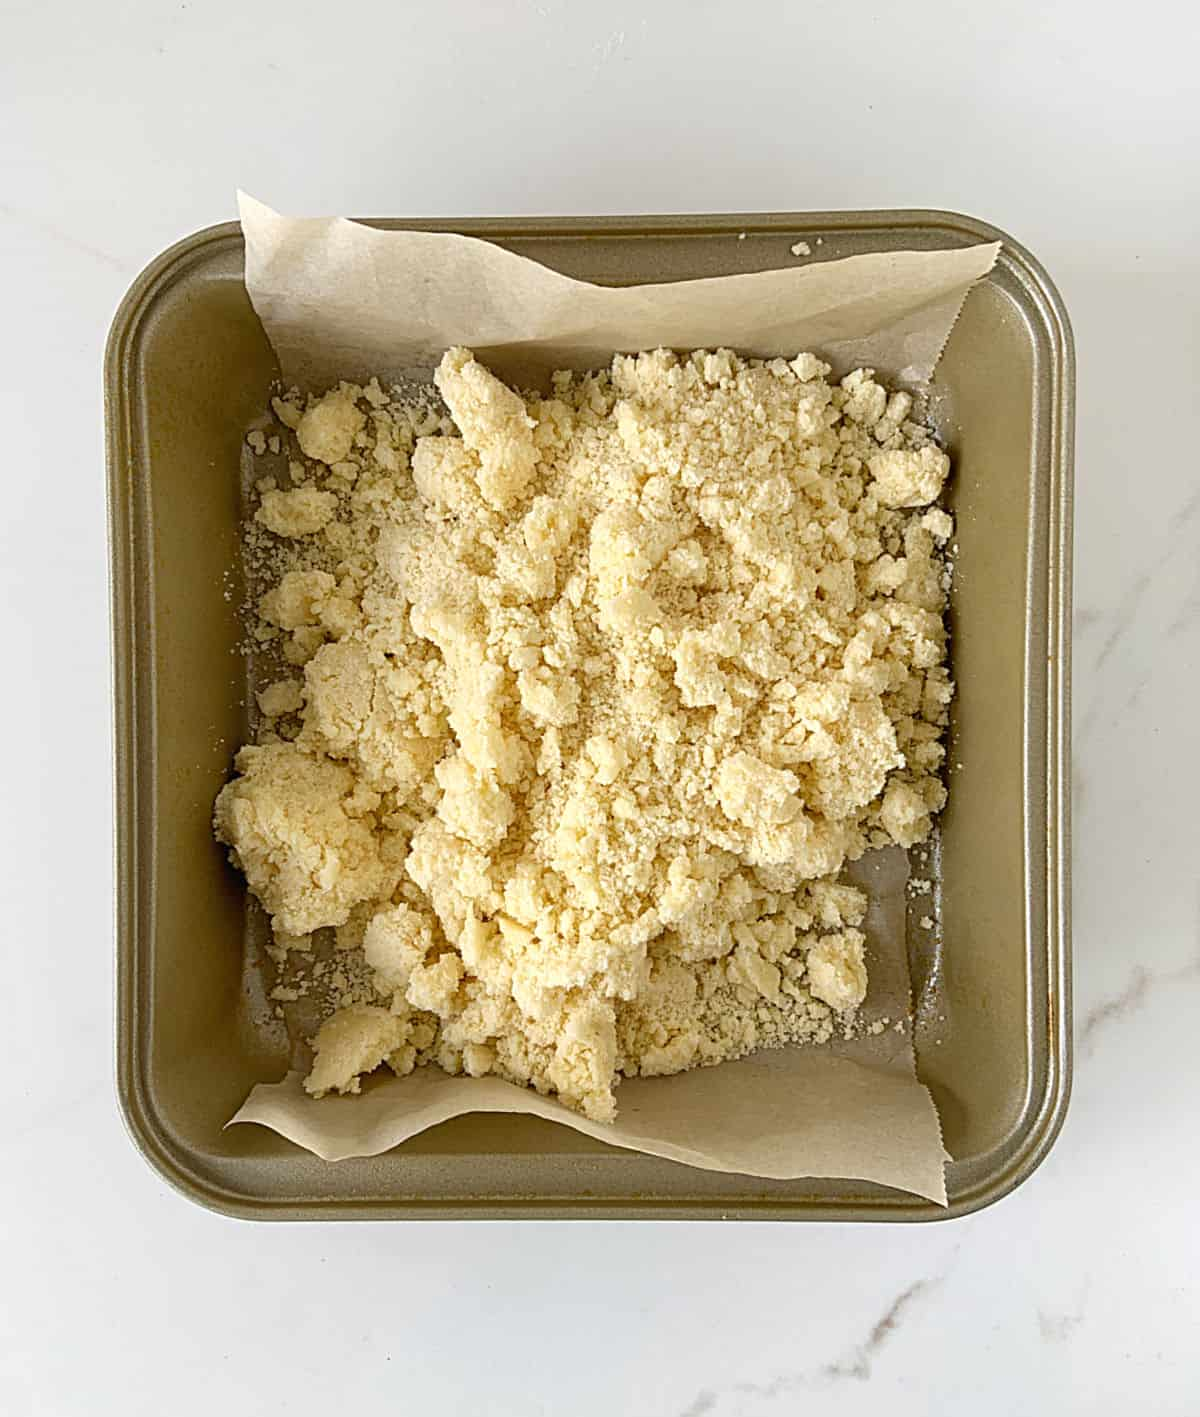 Dumped shortbread crumbly mixture on a golden pan